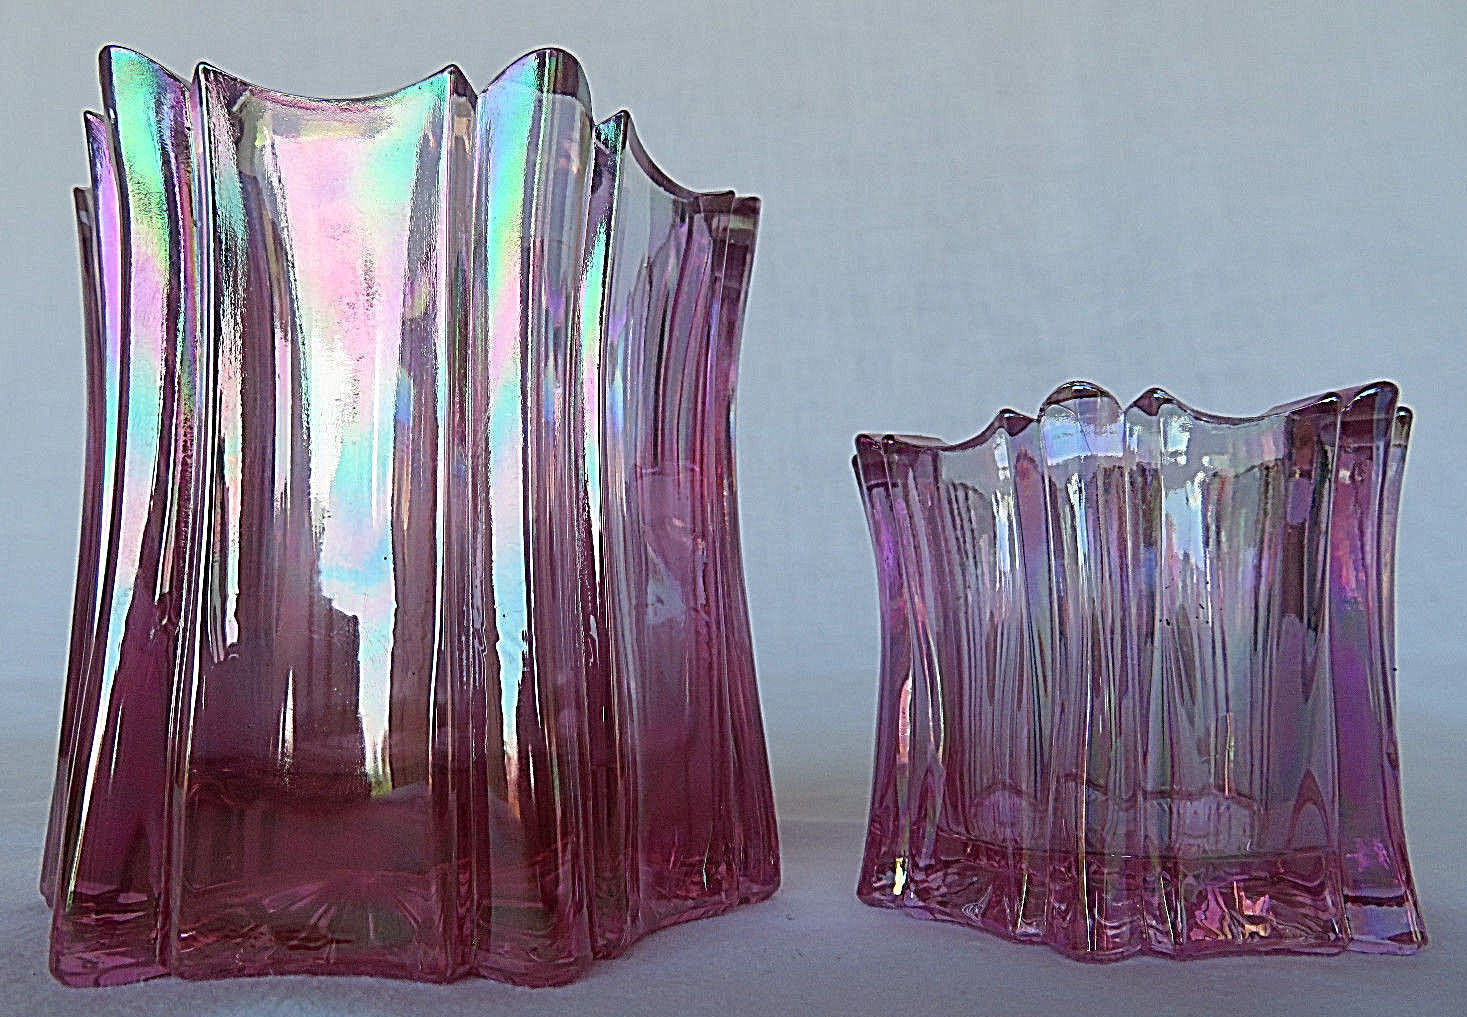 2 FENTON Vintage Art Glass handmade in USA Purple Pink Candle Holder Dish